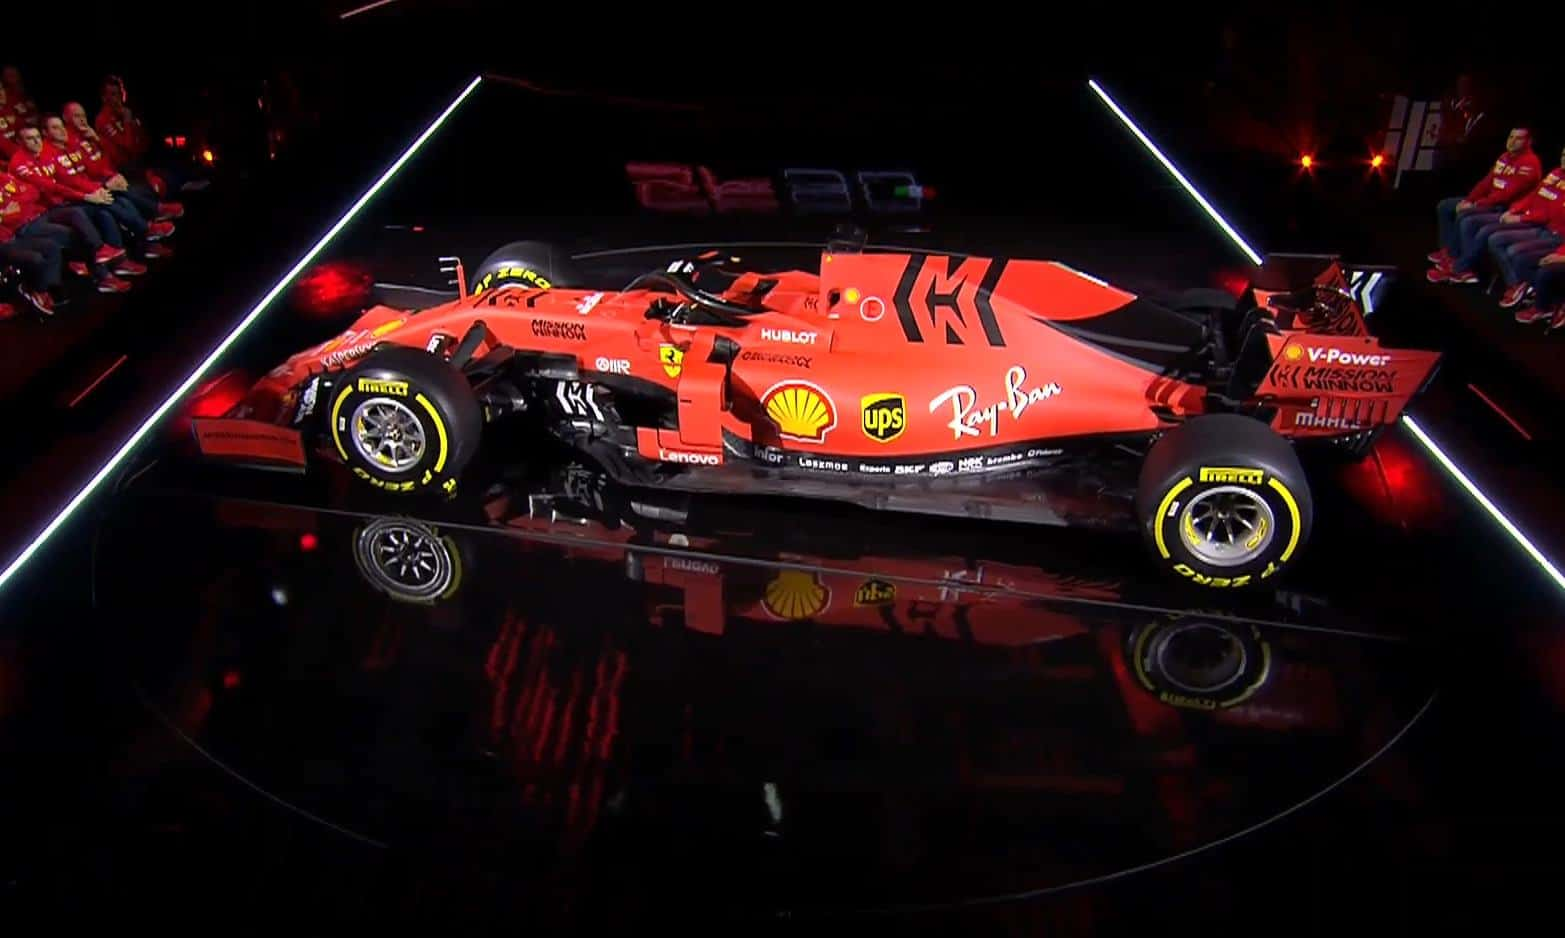 2019 Ferrari SF90H Photo Ferrari side angle live presentation 2